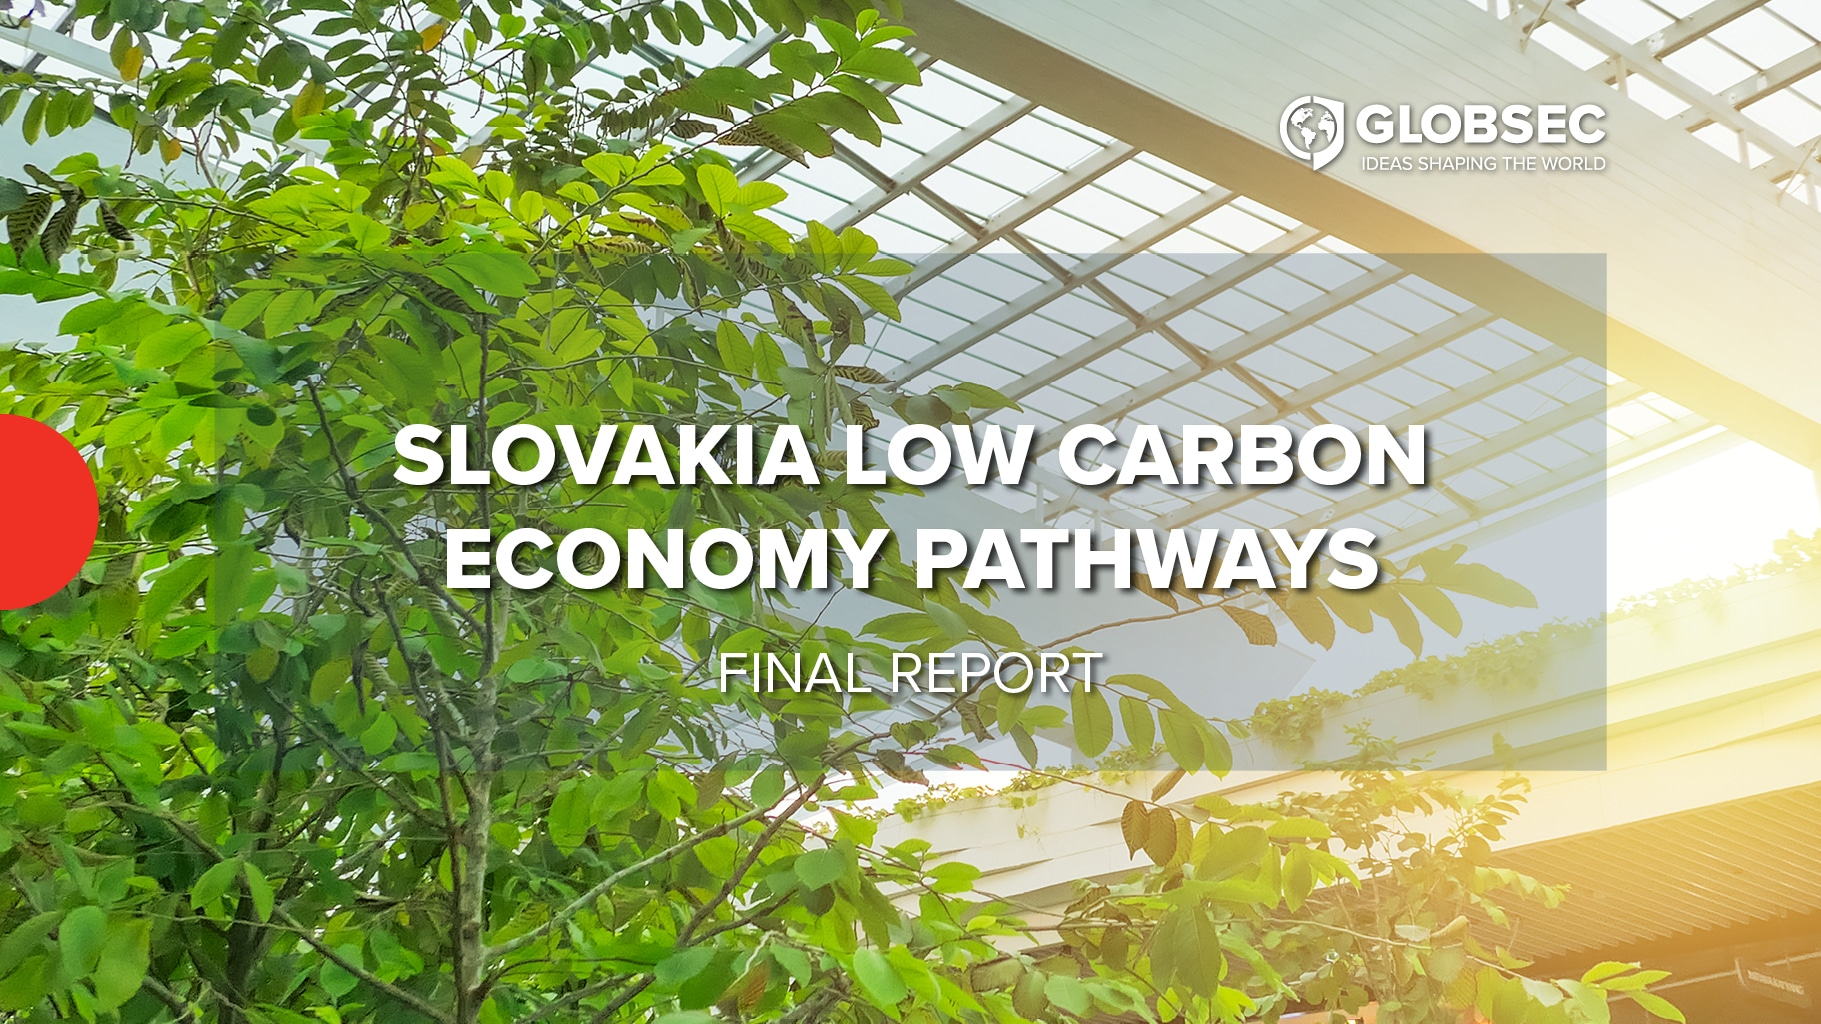 Slovakia Low Carbon Economy Pathways: Achieving More by 2030